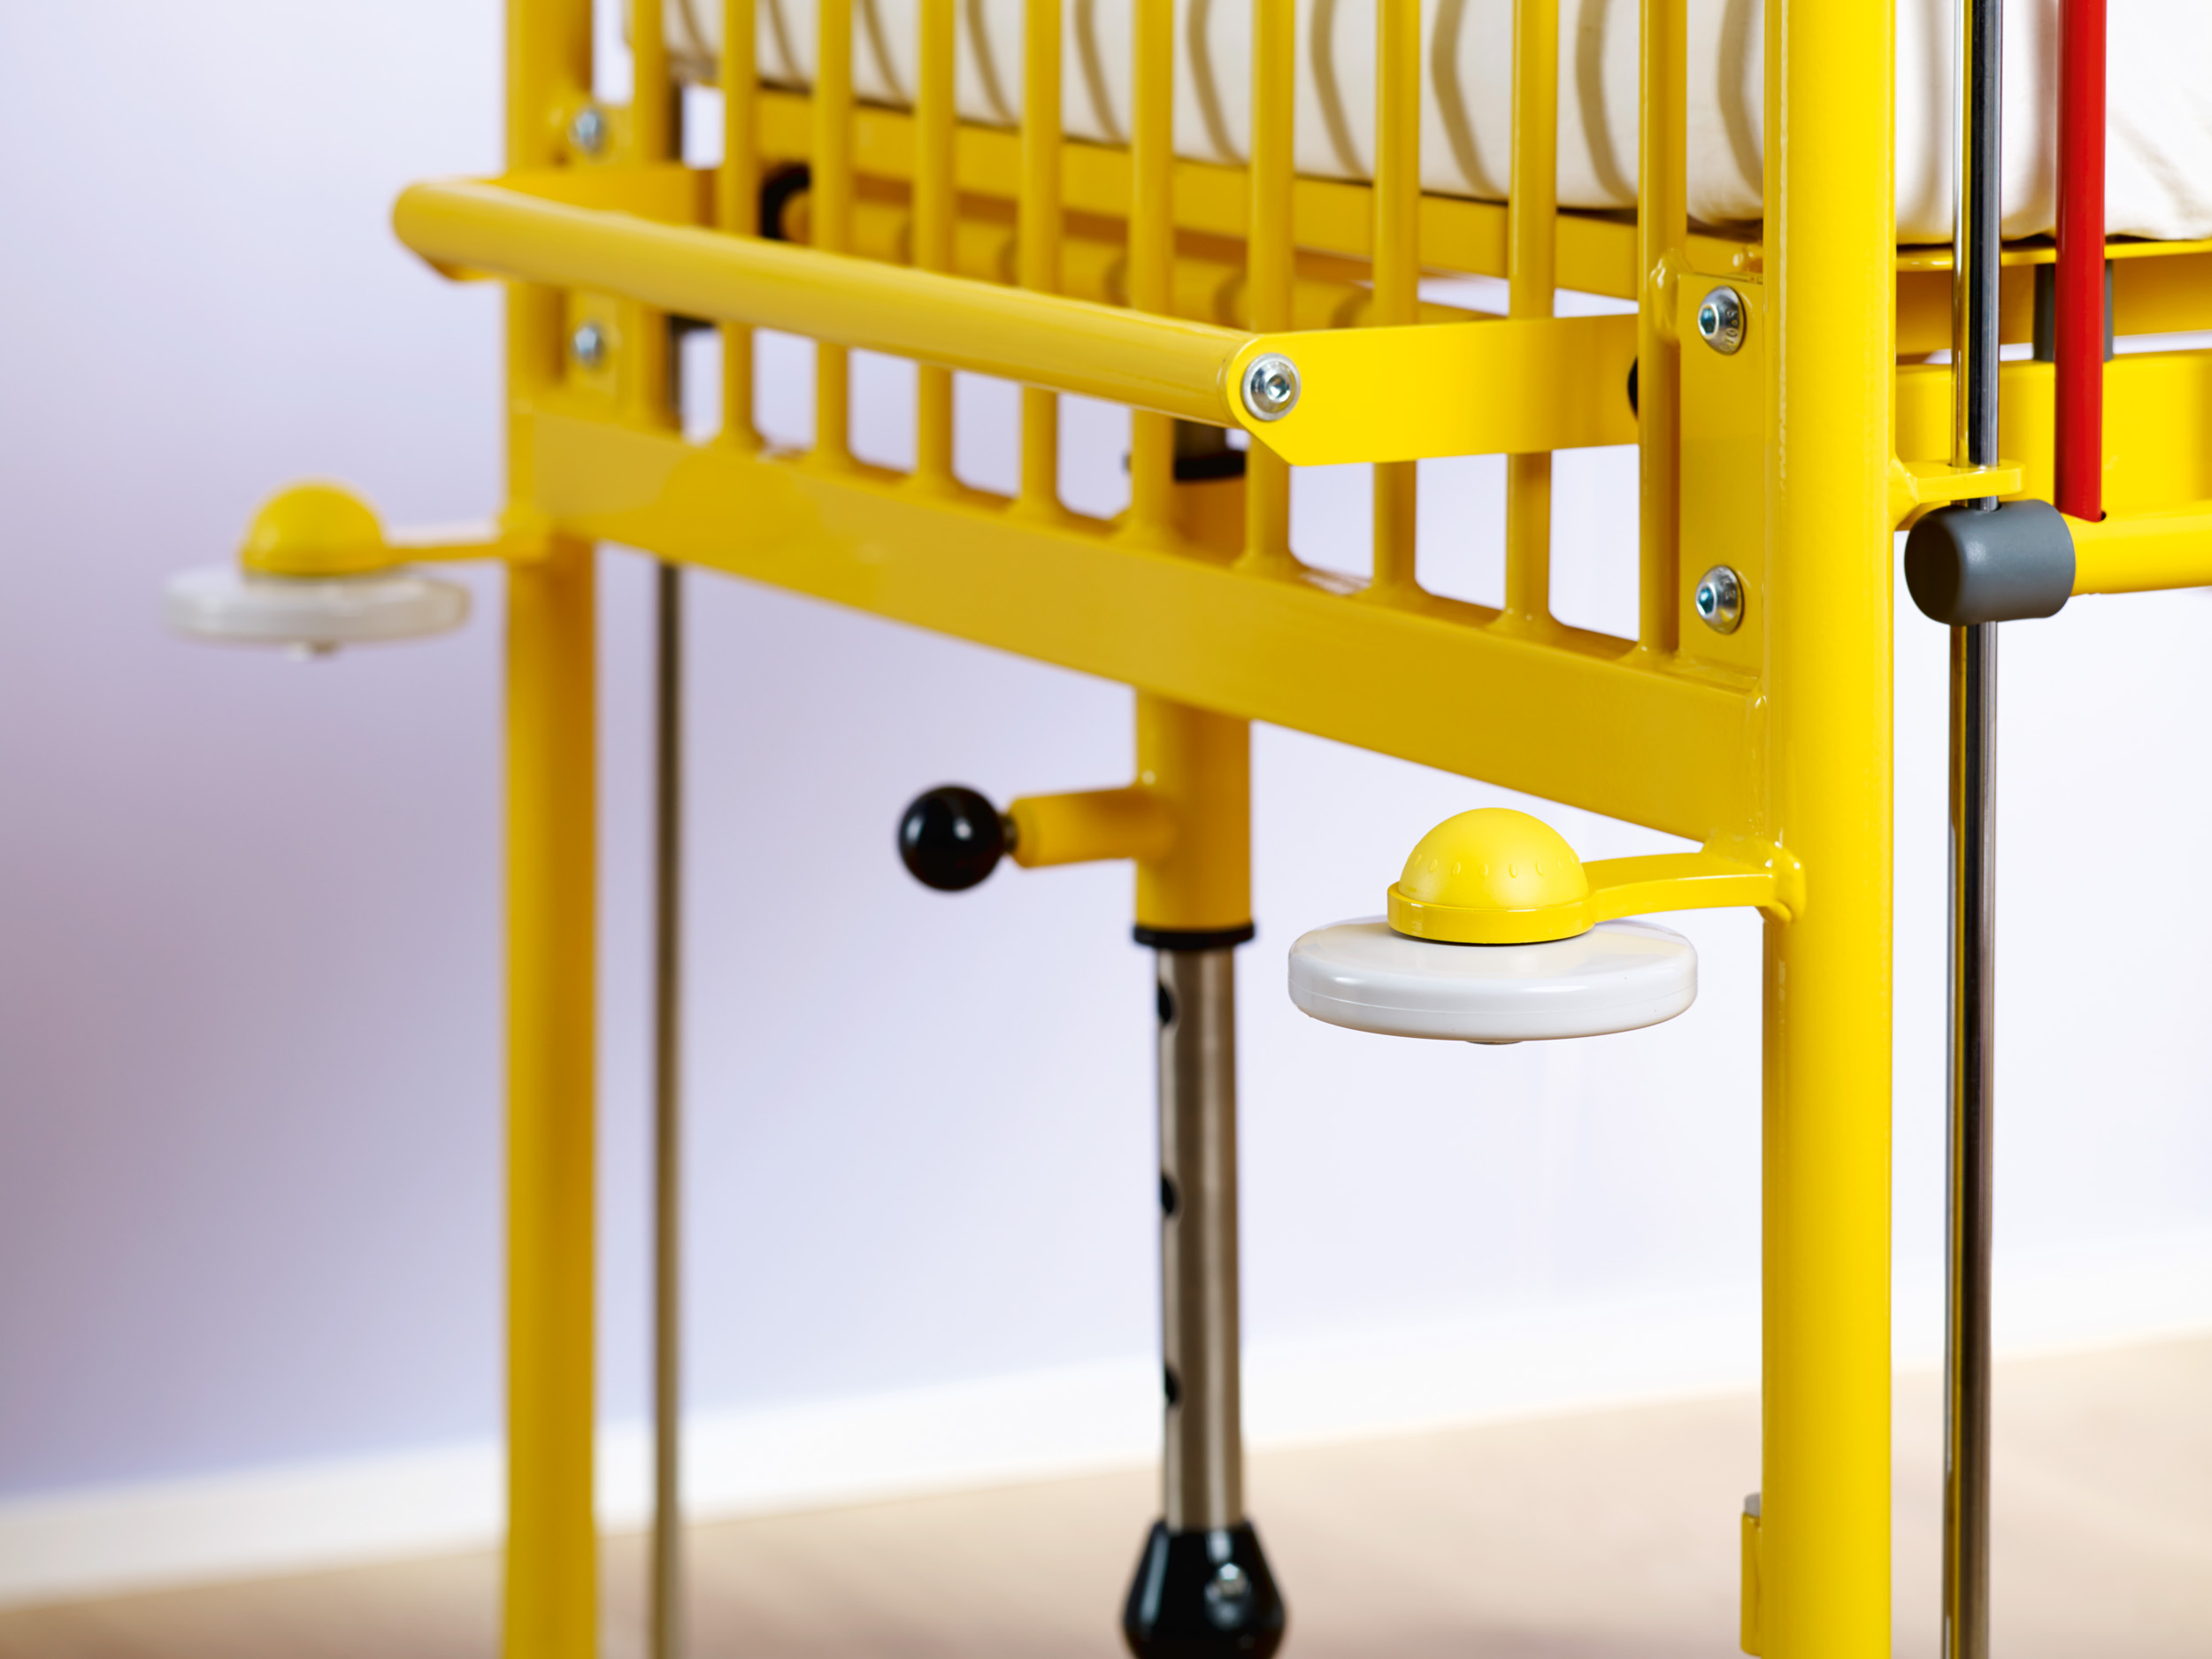 Easy height adjustment of the Junior cot